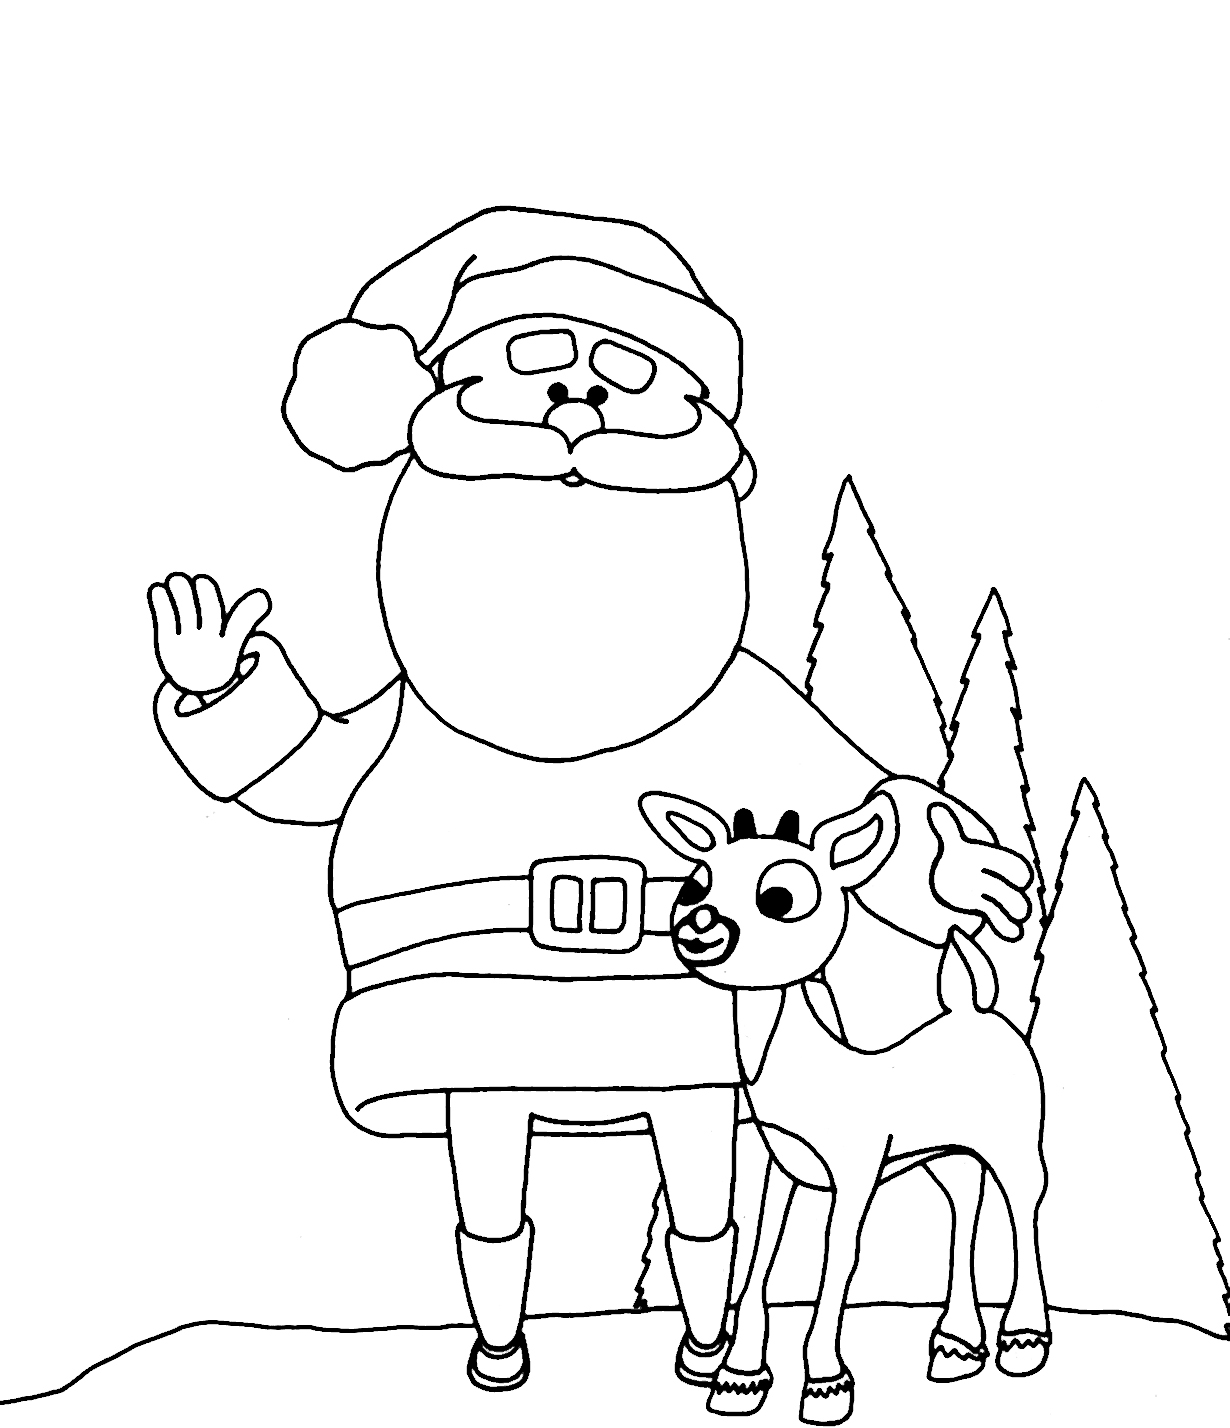 Santa Claus Christmas Coloring Pages For Kids With Free Printable